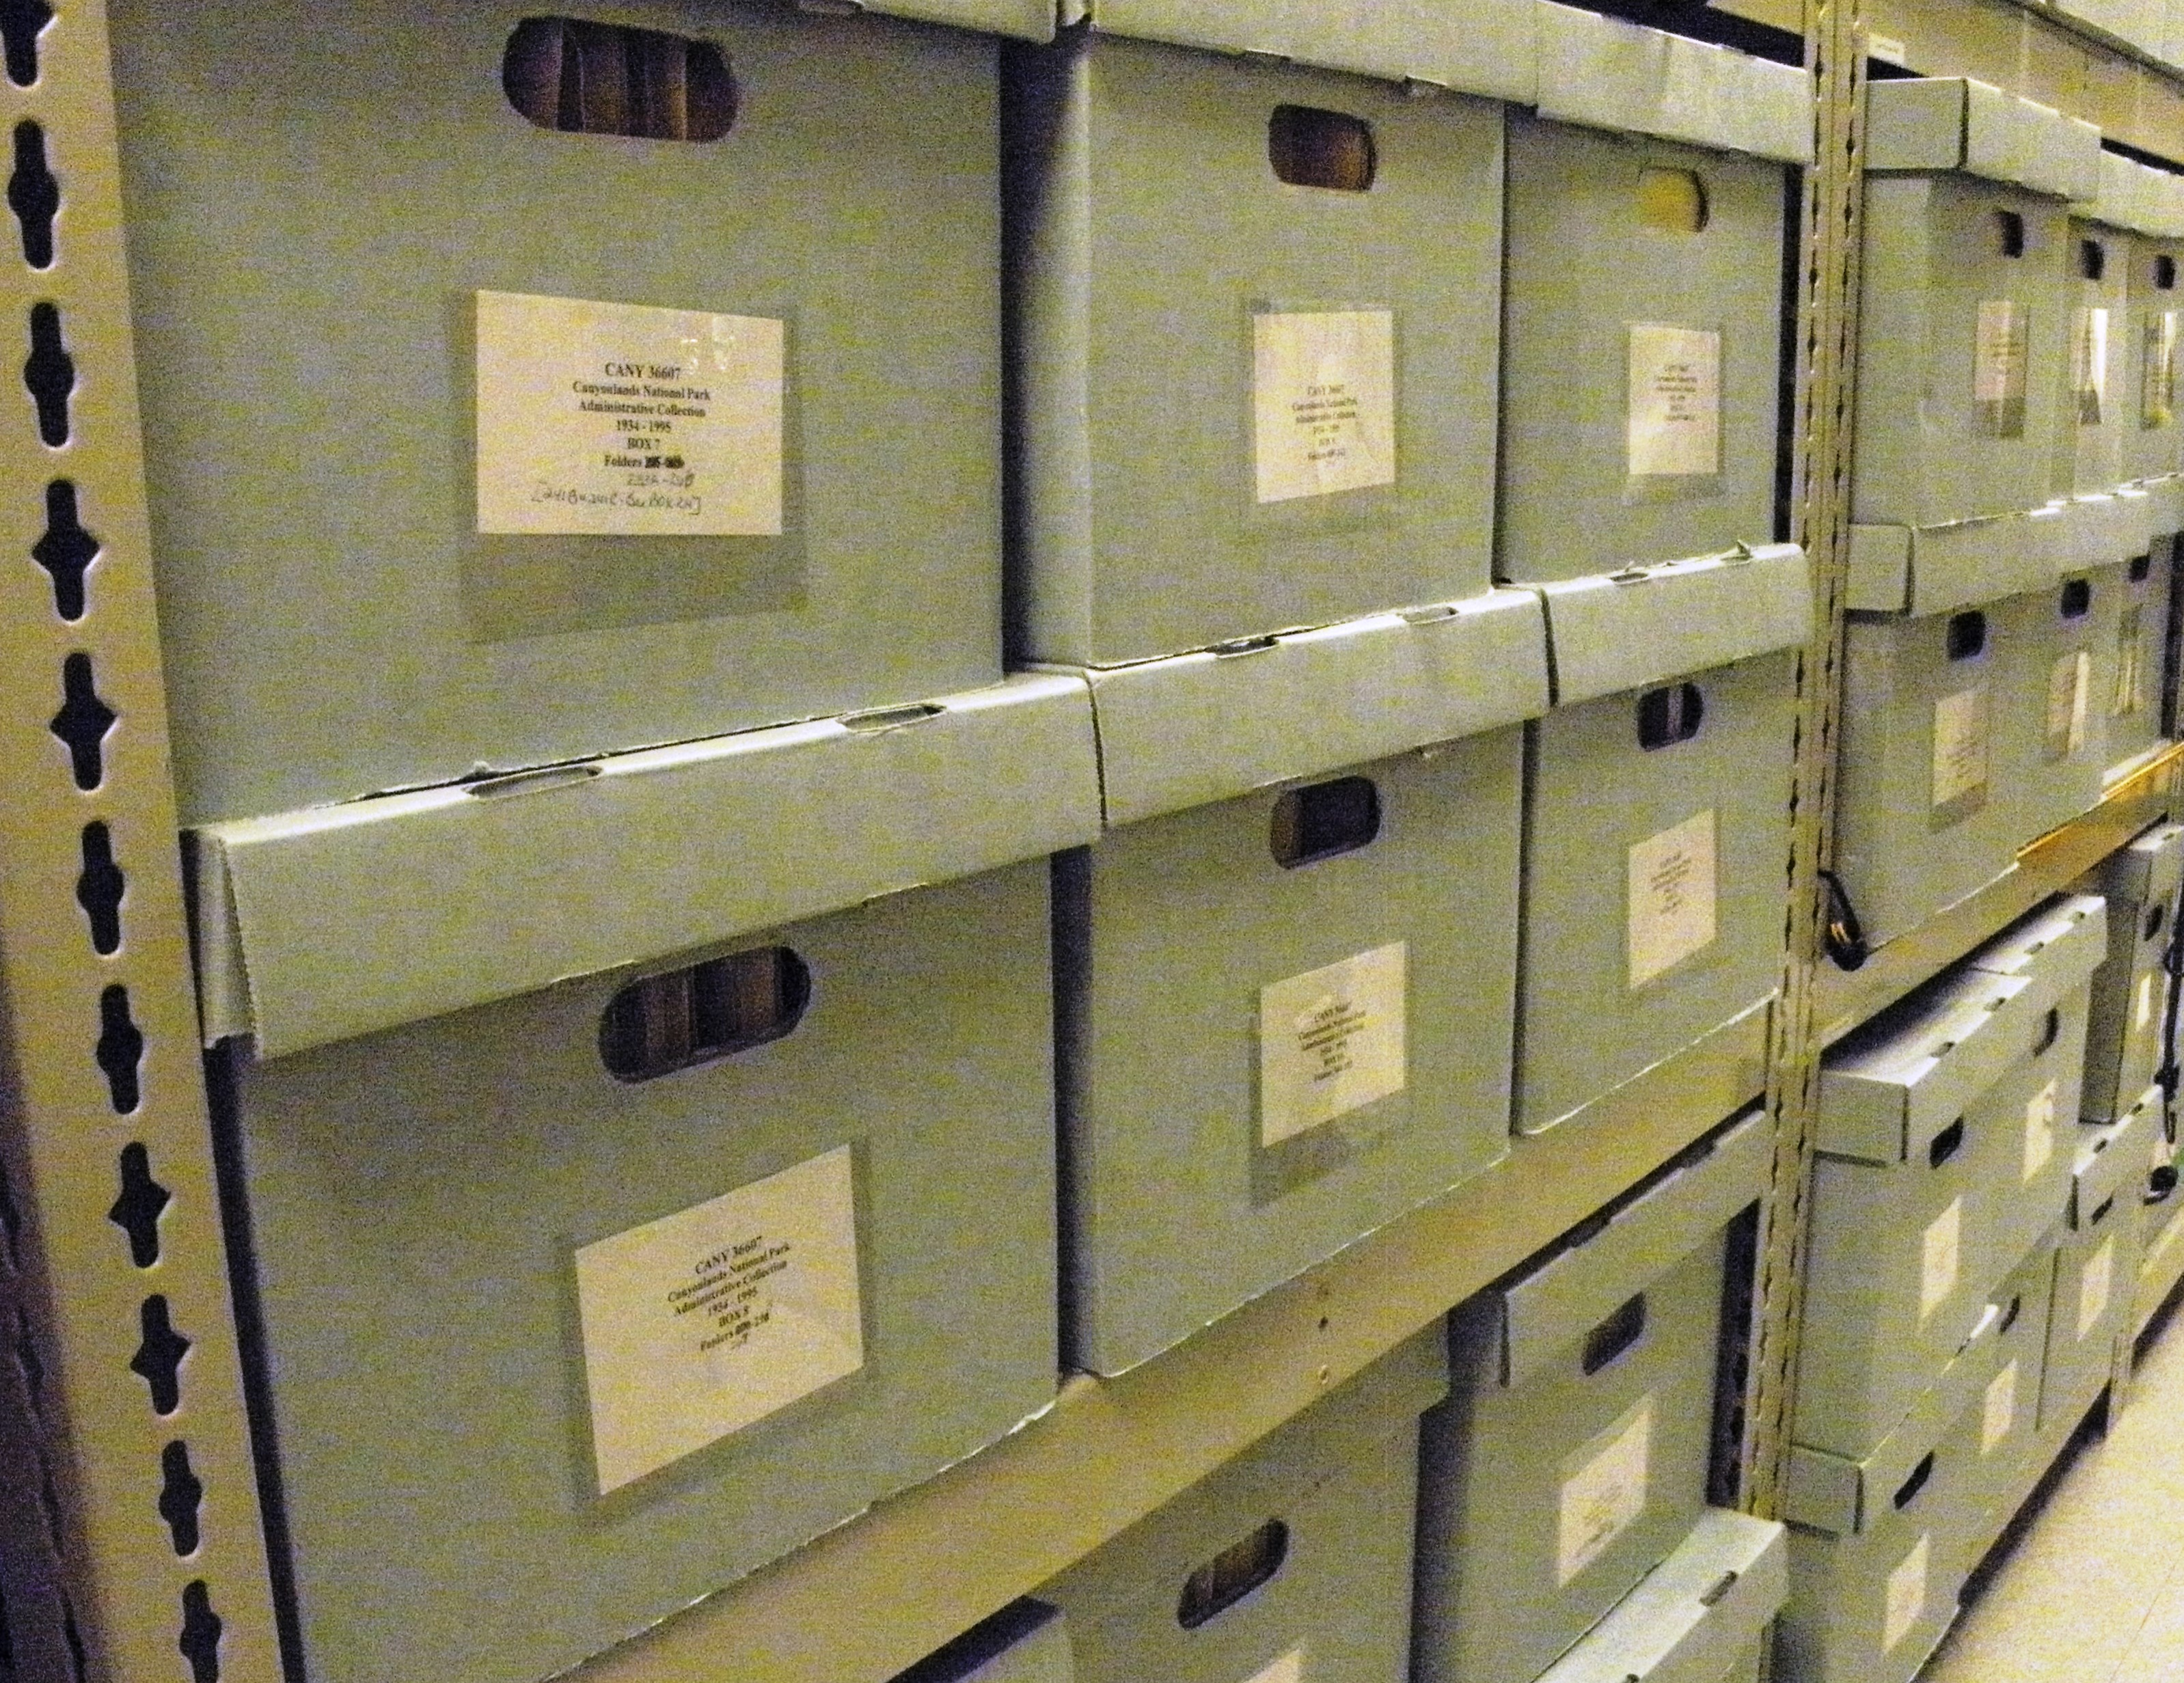 Photograph of archives boxes on archival shelving.